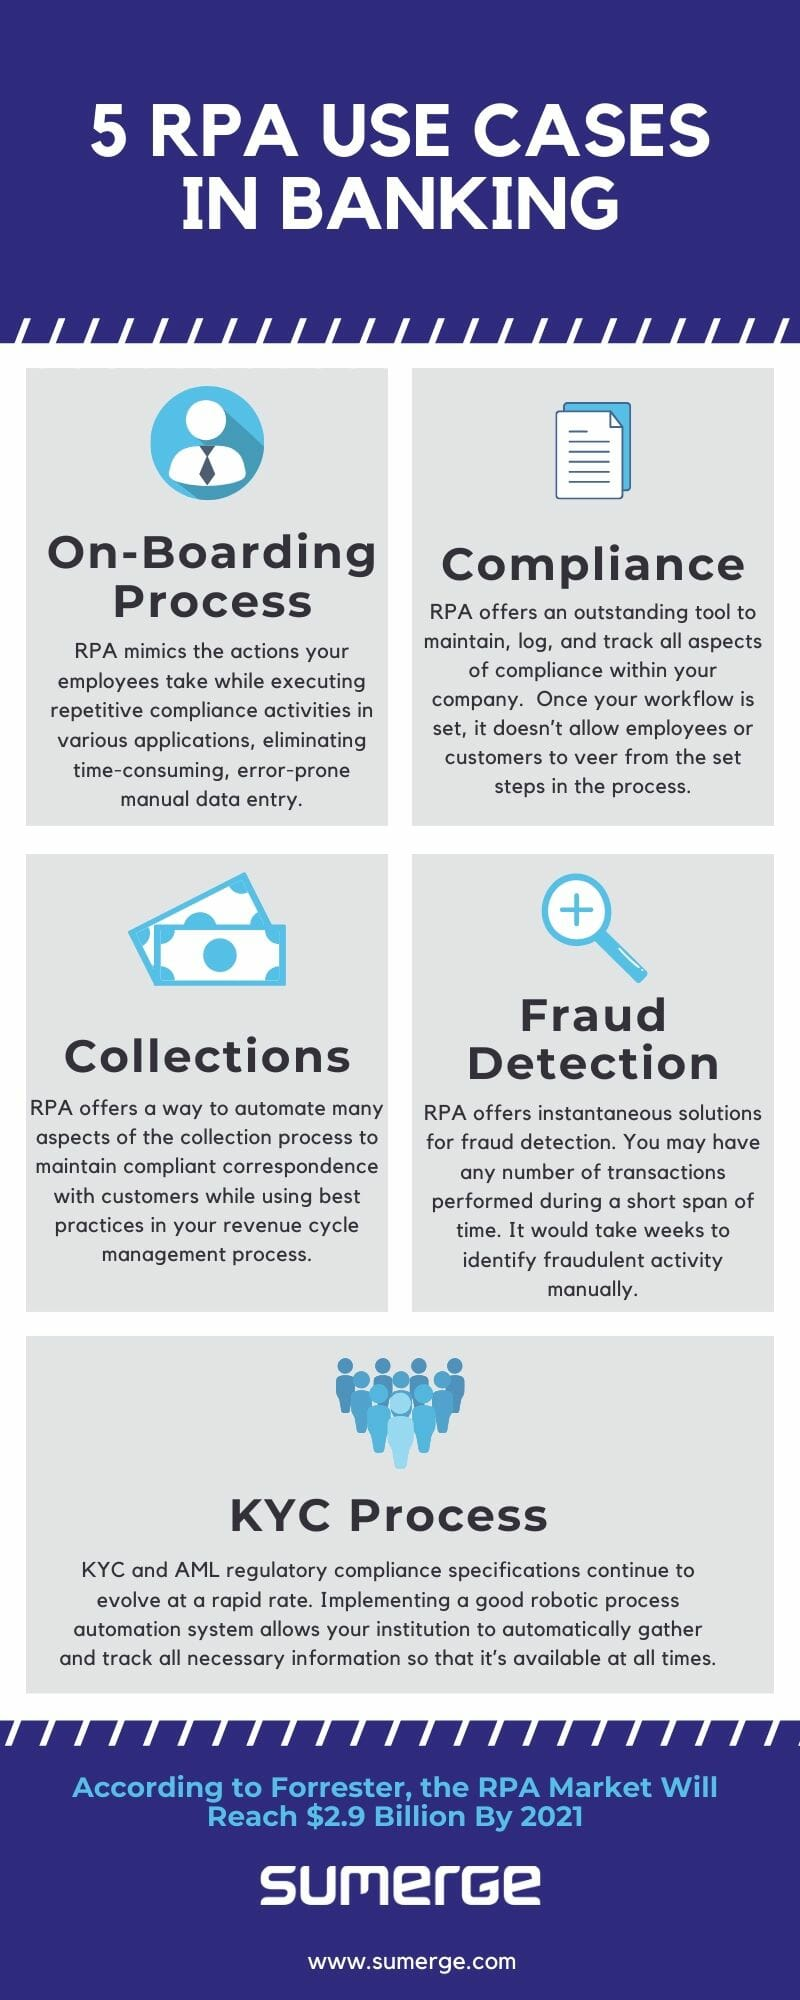 5 RPA Use Cases in Banking